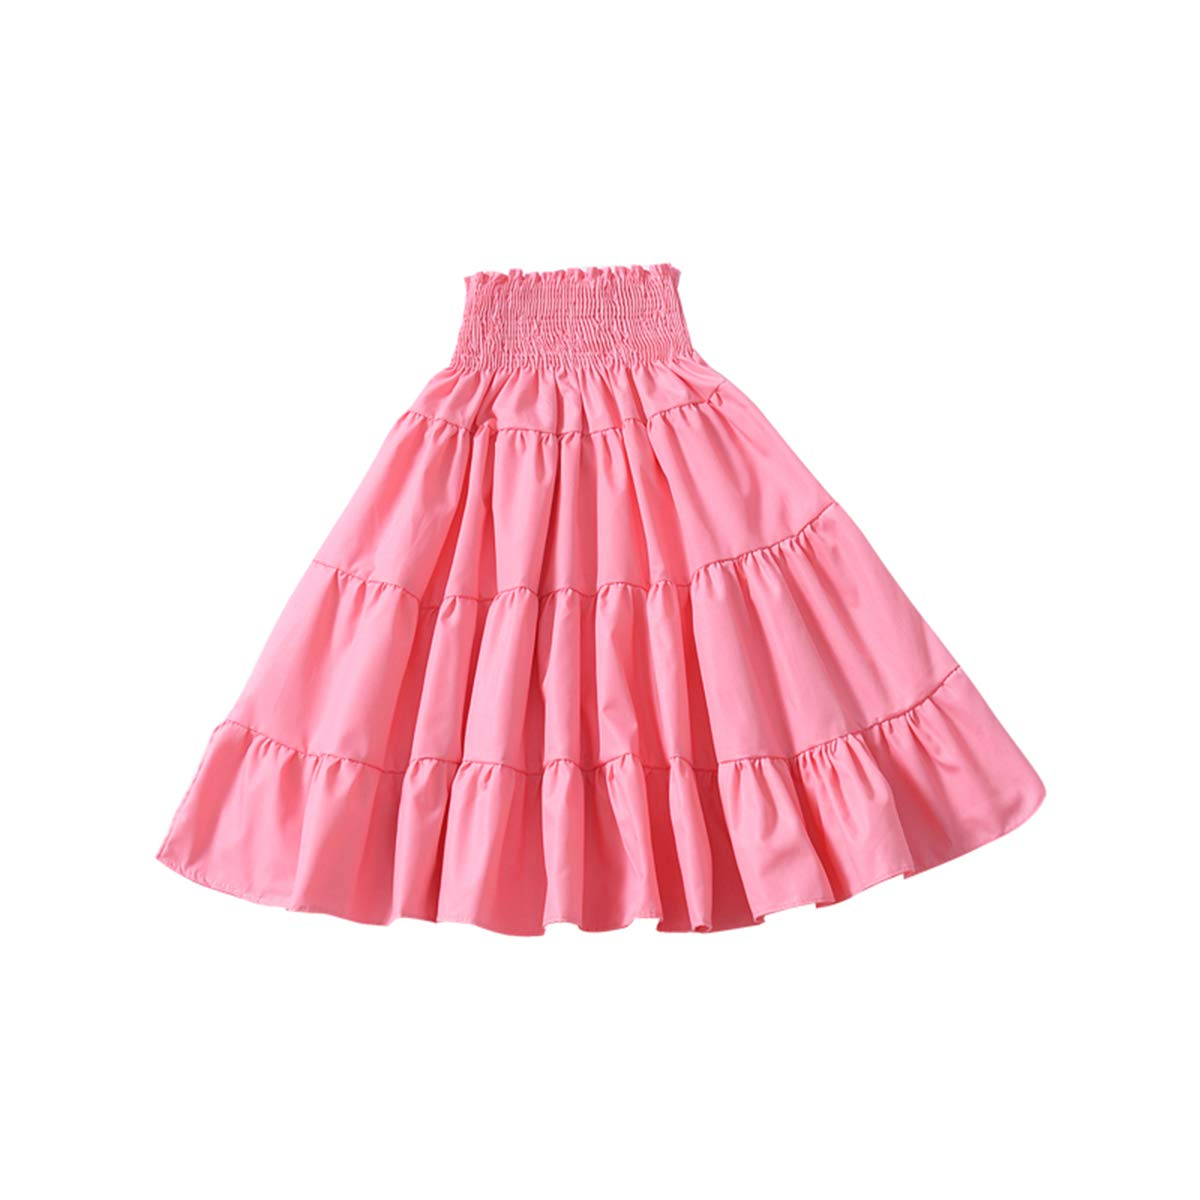 Pinleck Toddler Baby Girls Layered Dress Tiered Skirt Versatile Solid Pleated Sundress